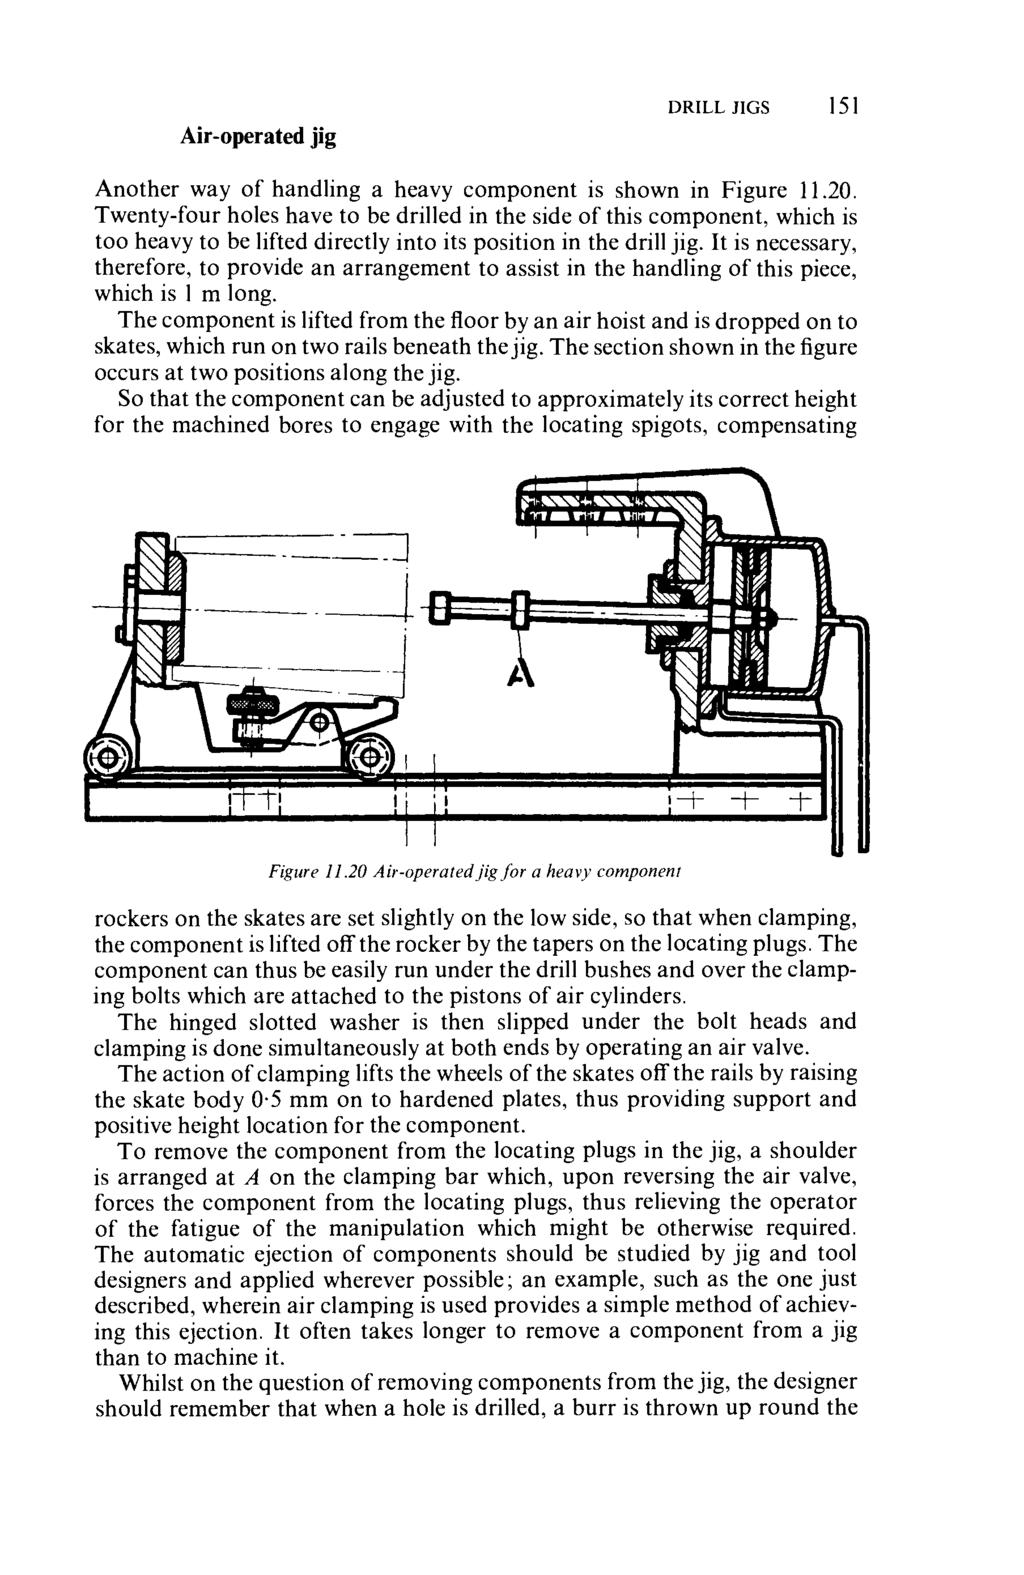 Air-operated jig DRILL JIGS 151 Another way of handling a heavy component is shown in Figure 11.20.